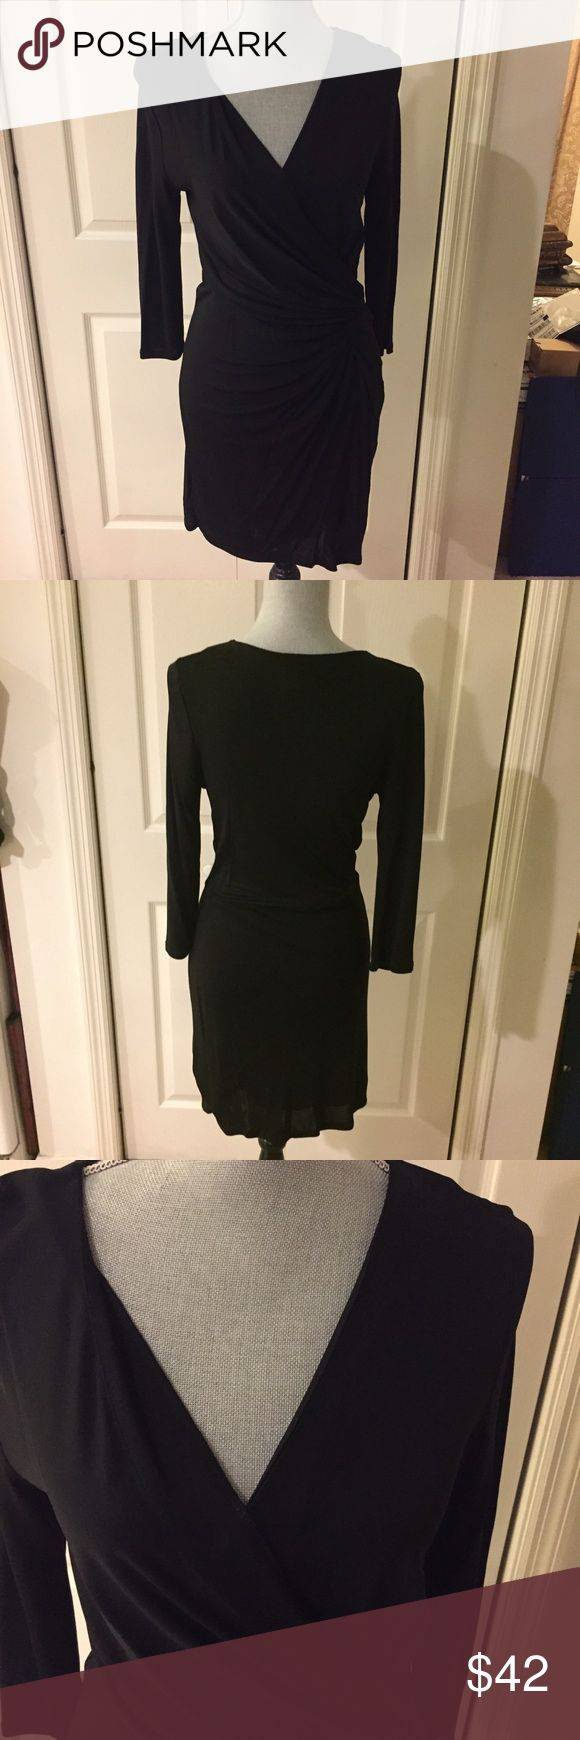 WHBM - Long Sleeve Dress - Faux Wrap ~ Medium -NWT White House Black Market Long Sleeve Faux Wrap Dress  Size: Medium  Body 100% Rayon Lining 95% Polyester 5% Spandex  Measurements: Laying Flat Armpit to armpit is 15in. (and stretches to 18in) Length is 40in  Retails for $98  New With Tags  With a waist defining wrapped bodice and angular tucks, this  dress shapes for a sleek look. Designed  print with a faux wrapped skirt. White House Black Market Dresses Midi